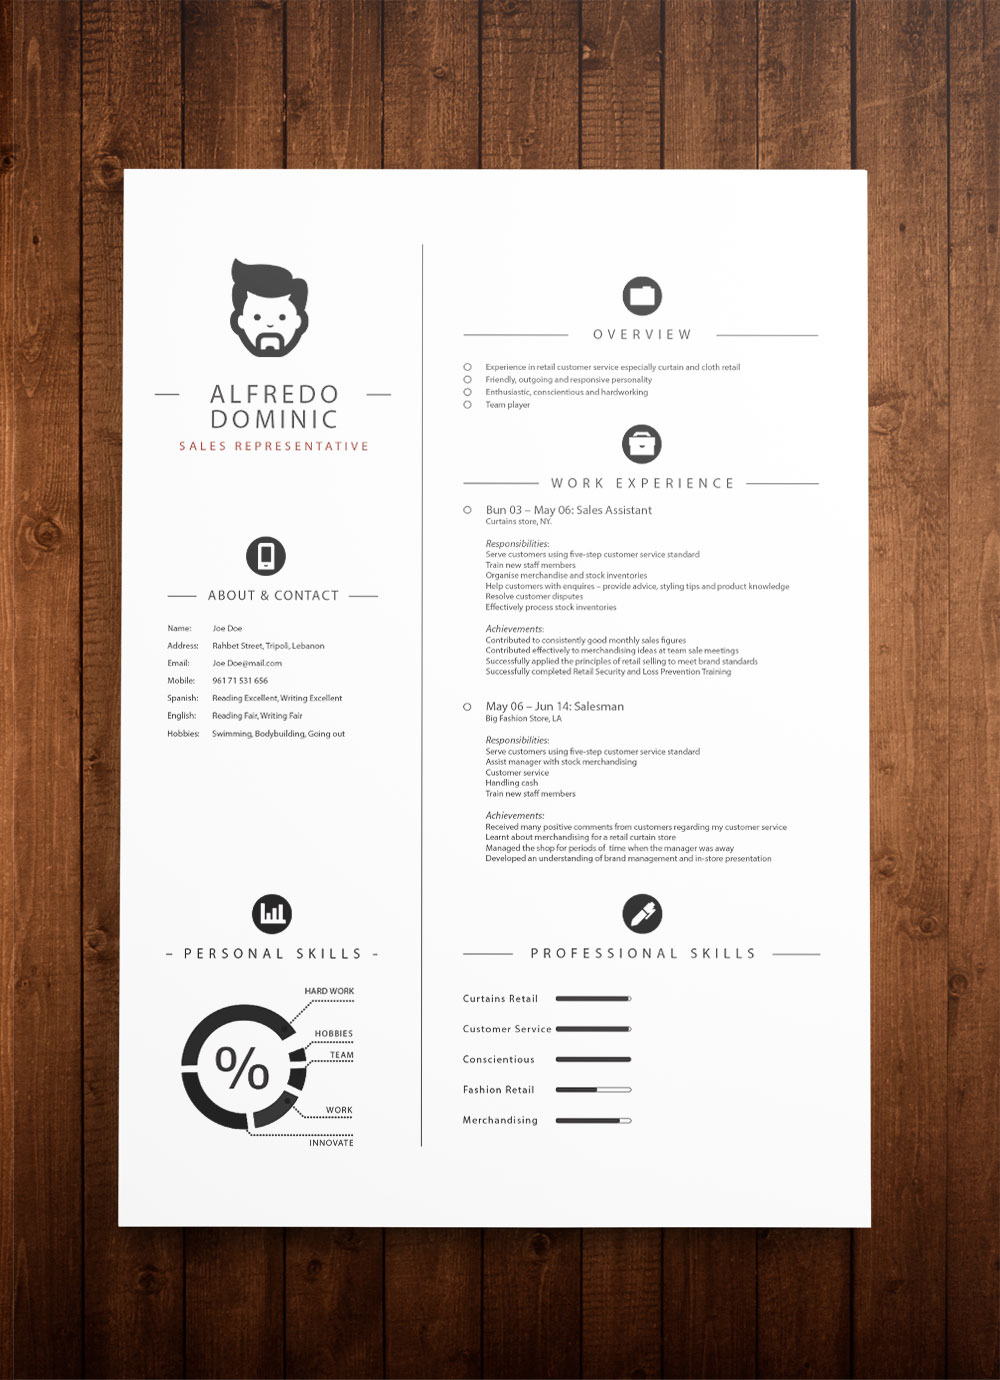 Top Resume Templates In March 2015